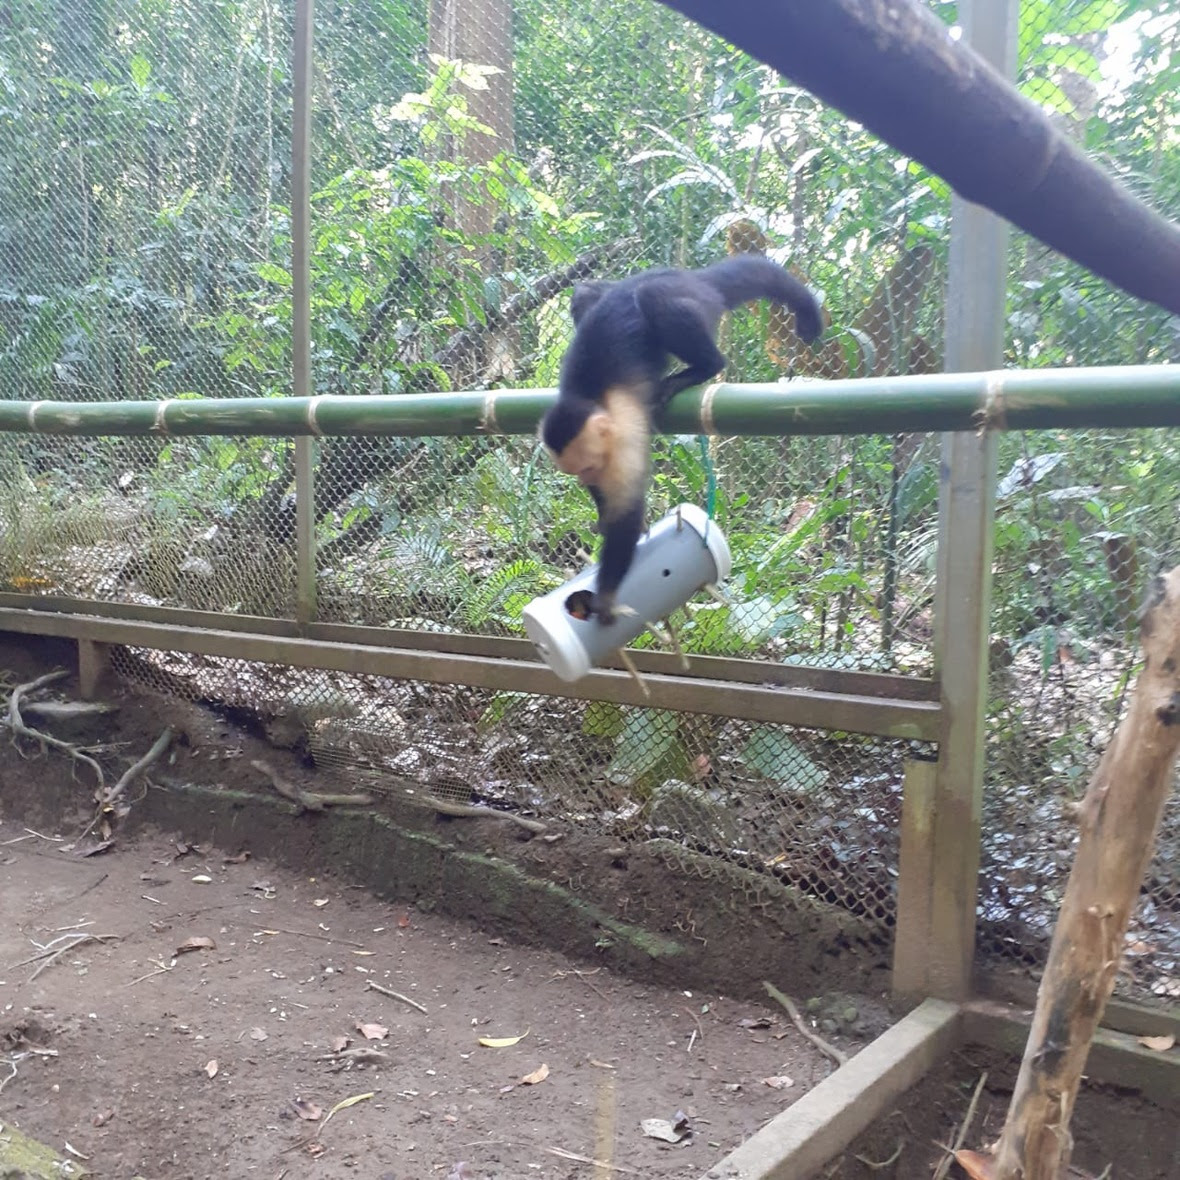 Capuchin stands on bamboo and manipulates hanging enrichment below her.